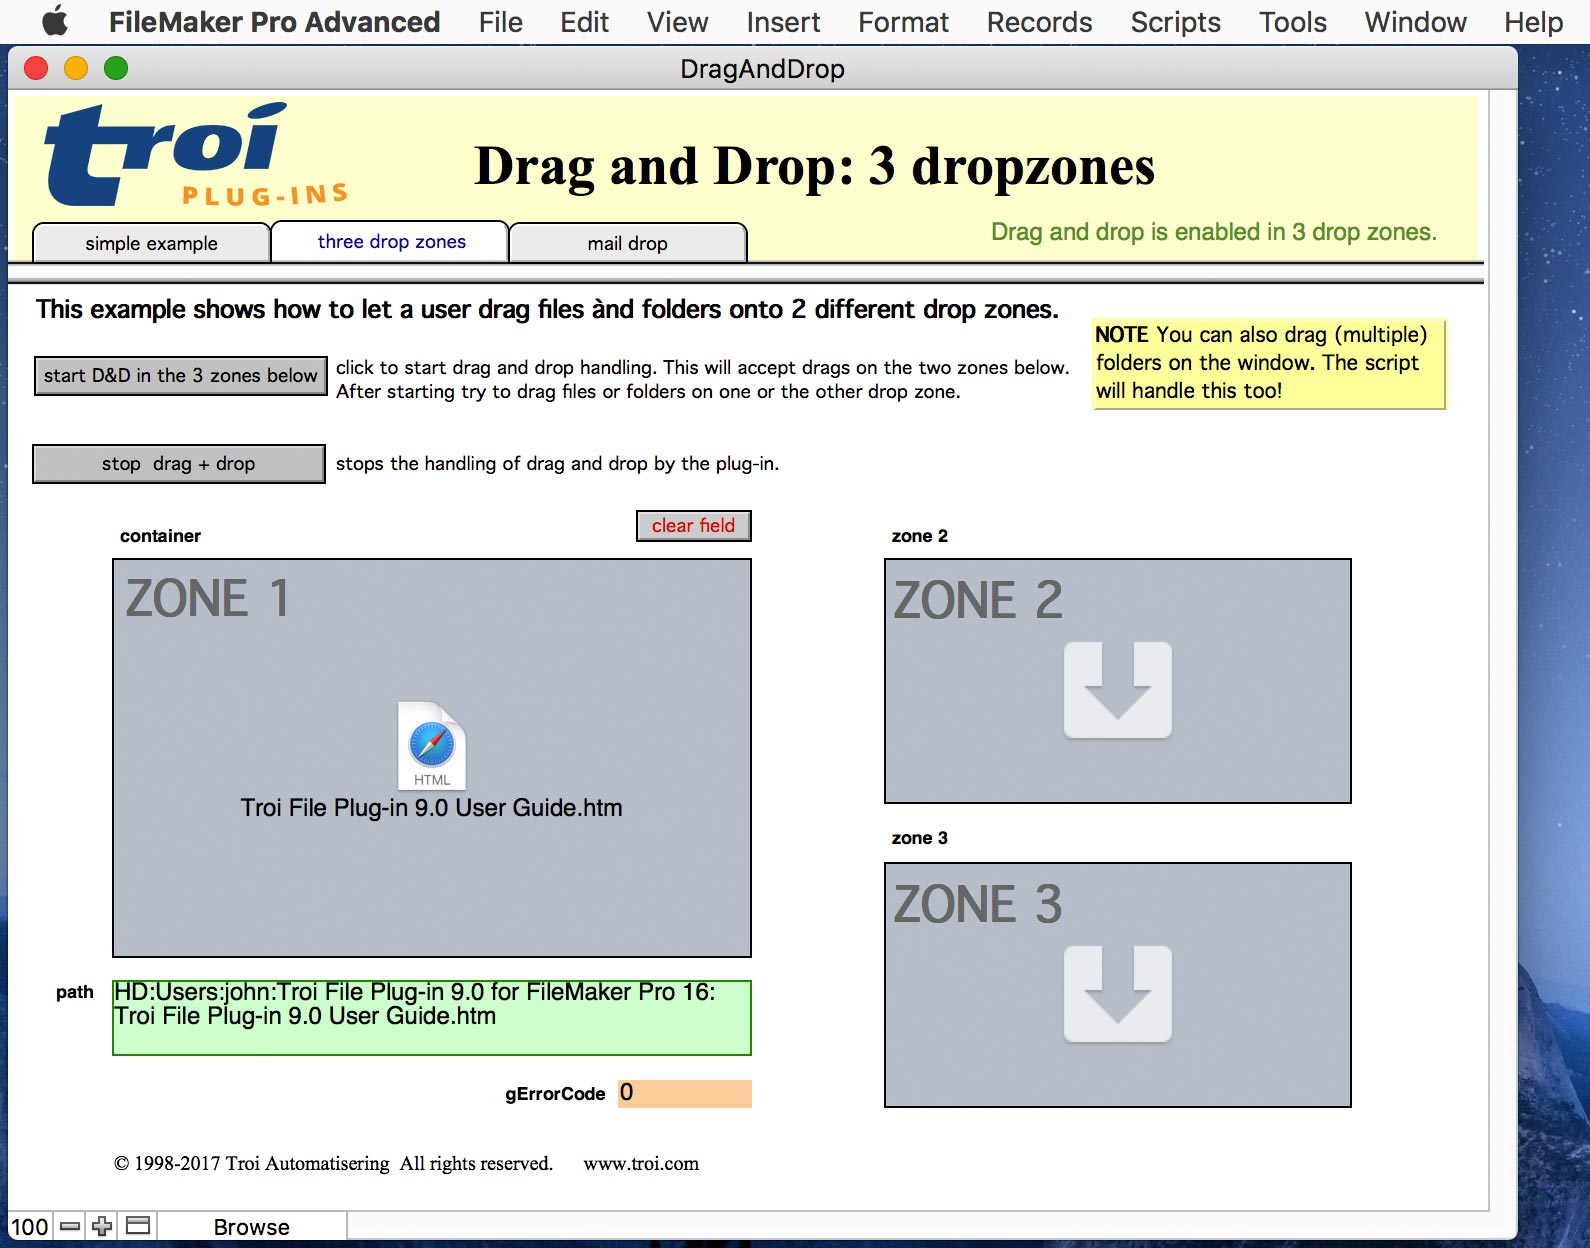 FileMaker Pro 15 with bottom status showing in drag-and-drop example